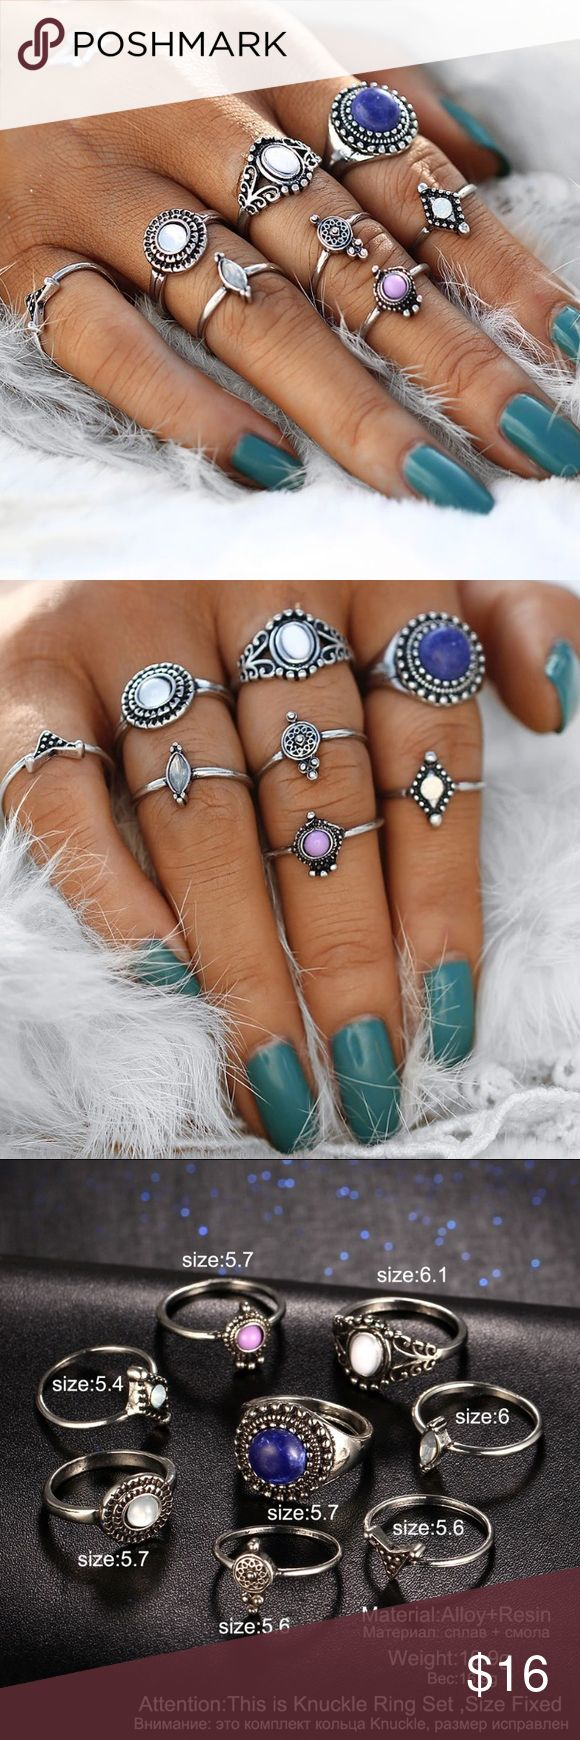 Gypsy Opal Stone Rings Set ▪️Brand New Midi Knuckle Rings ▪️Set: 7 Rings  ▪️Midi Rings ▪️Dainty  Rings Set  ▪️Price is firm unless bundled.   🌷Happy Poshing! Jewelry Rings